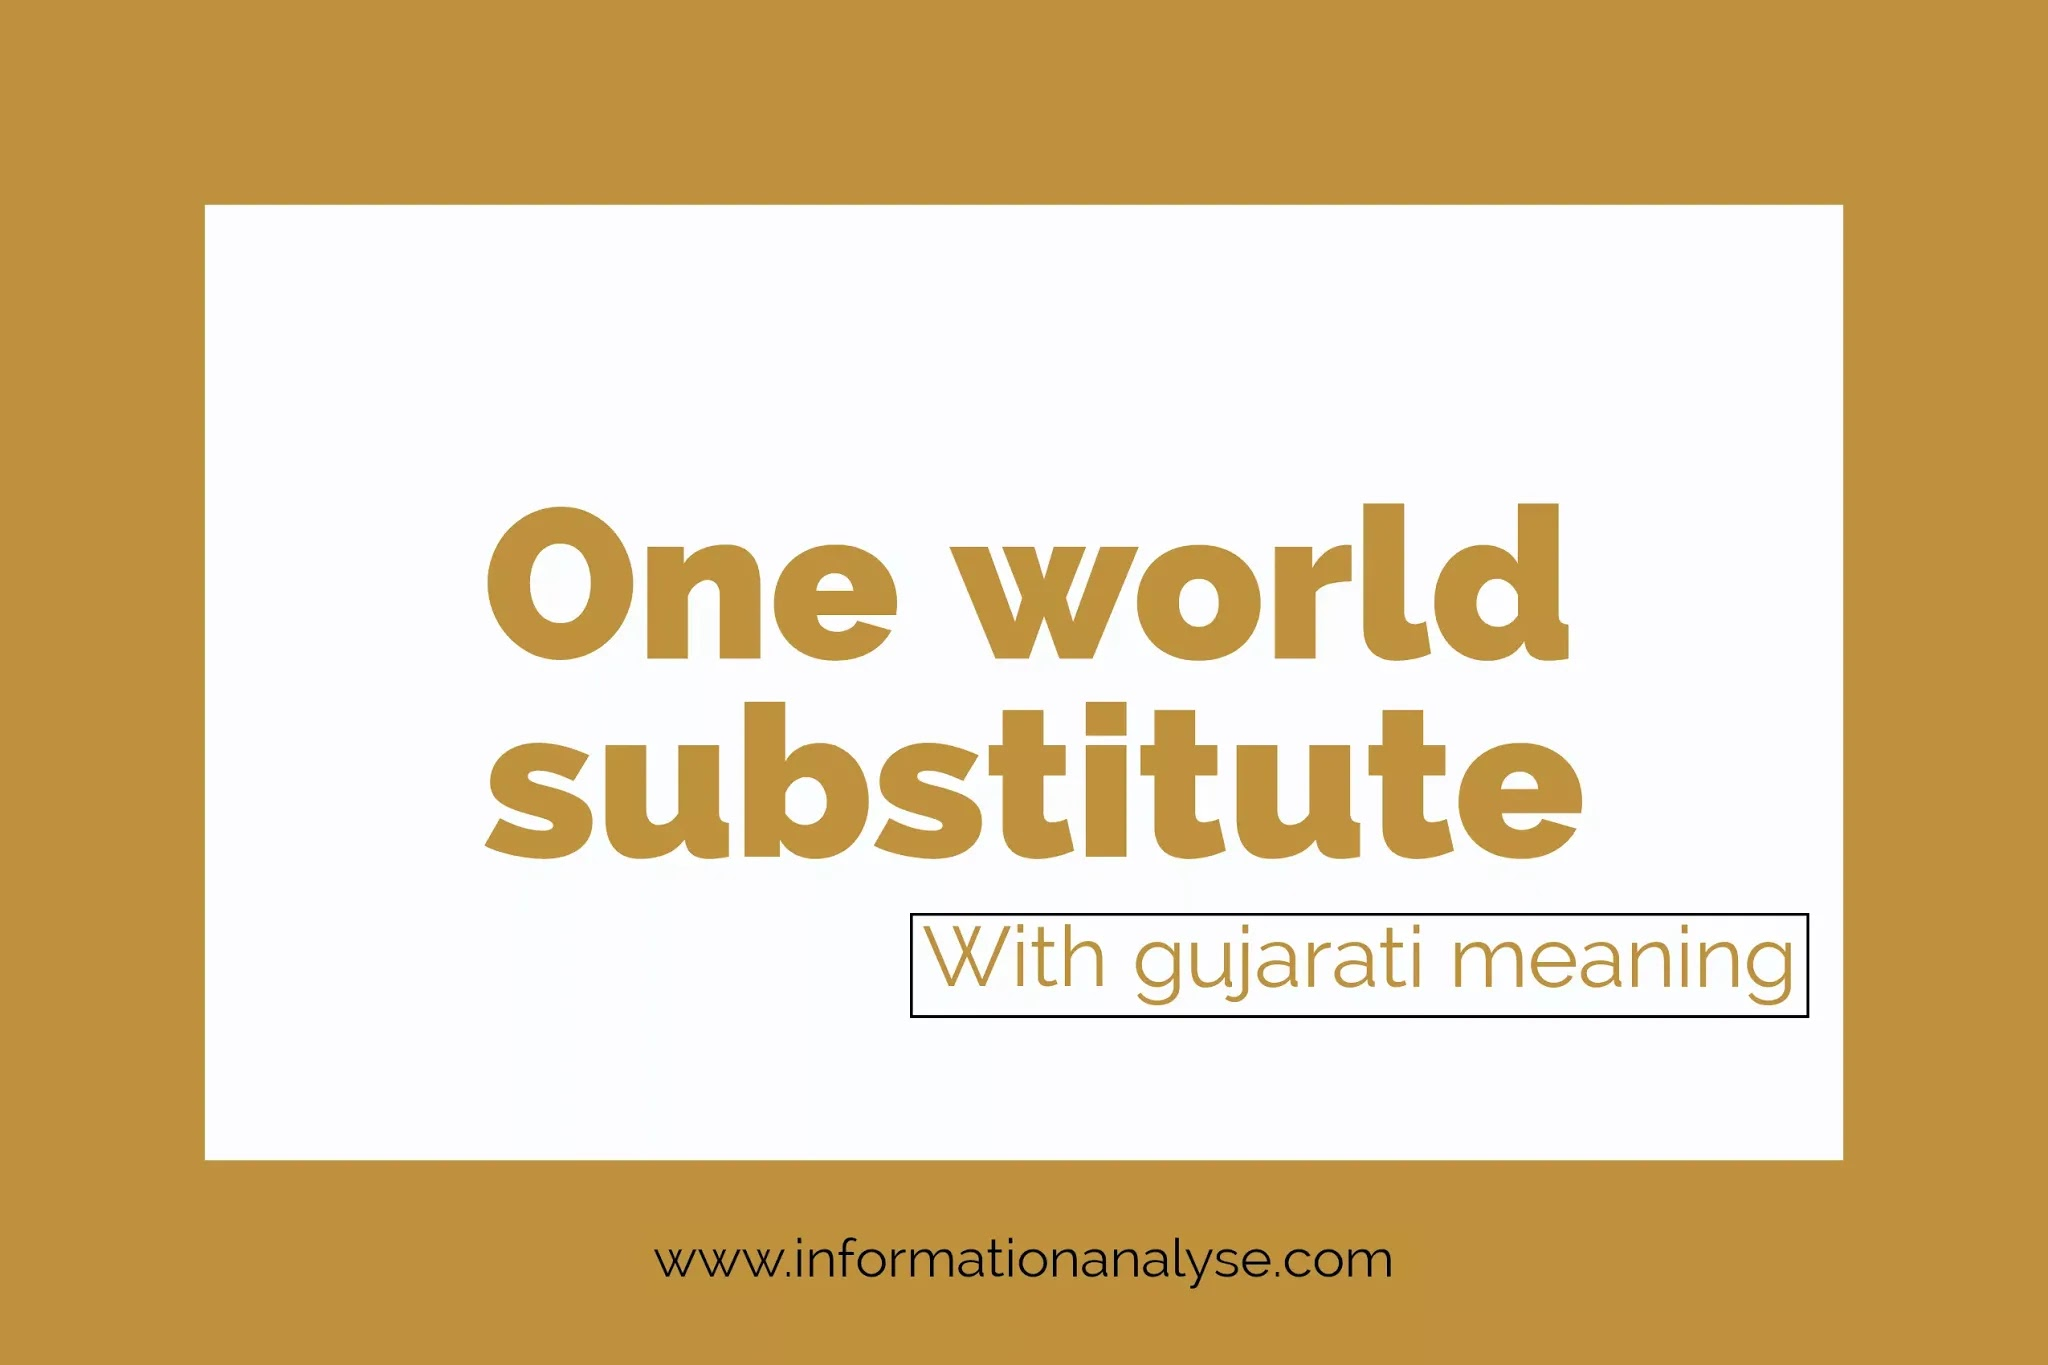 One word substitution with Gujarati meaning